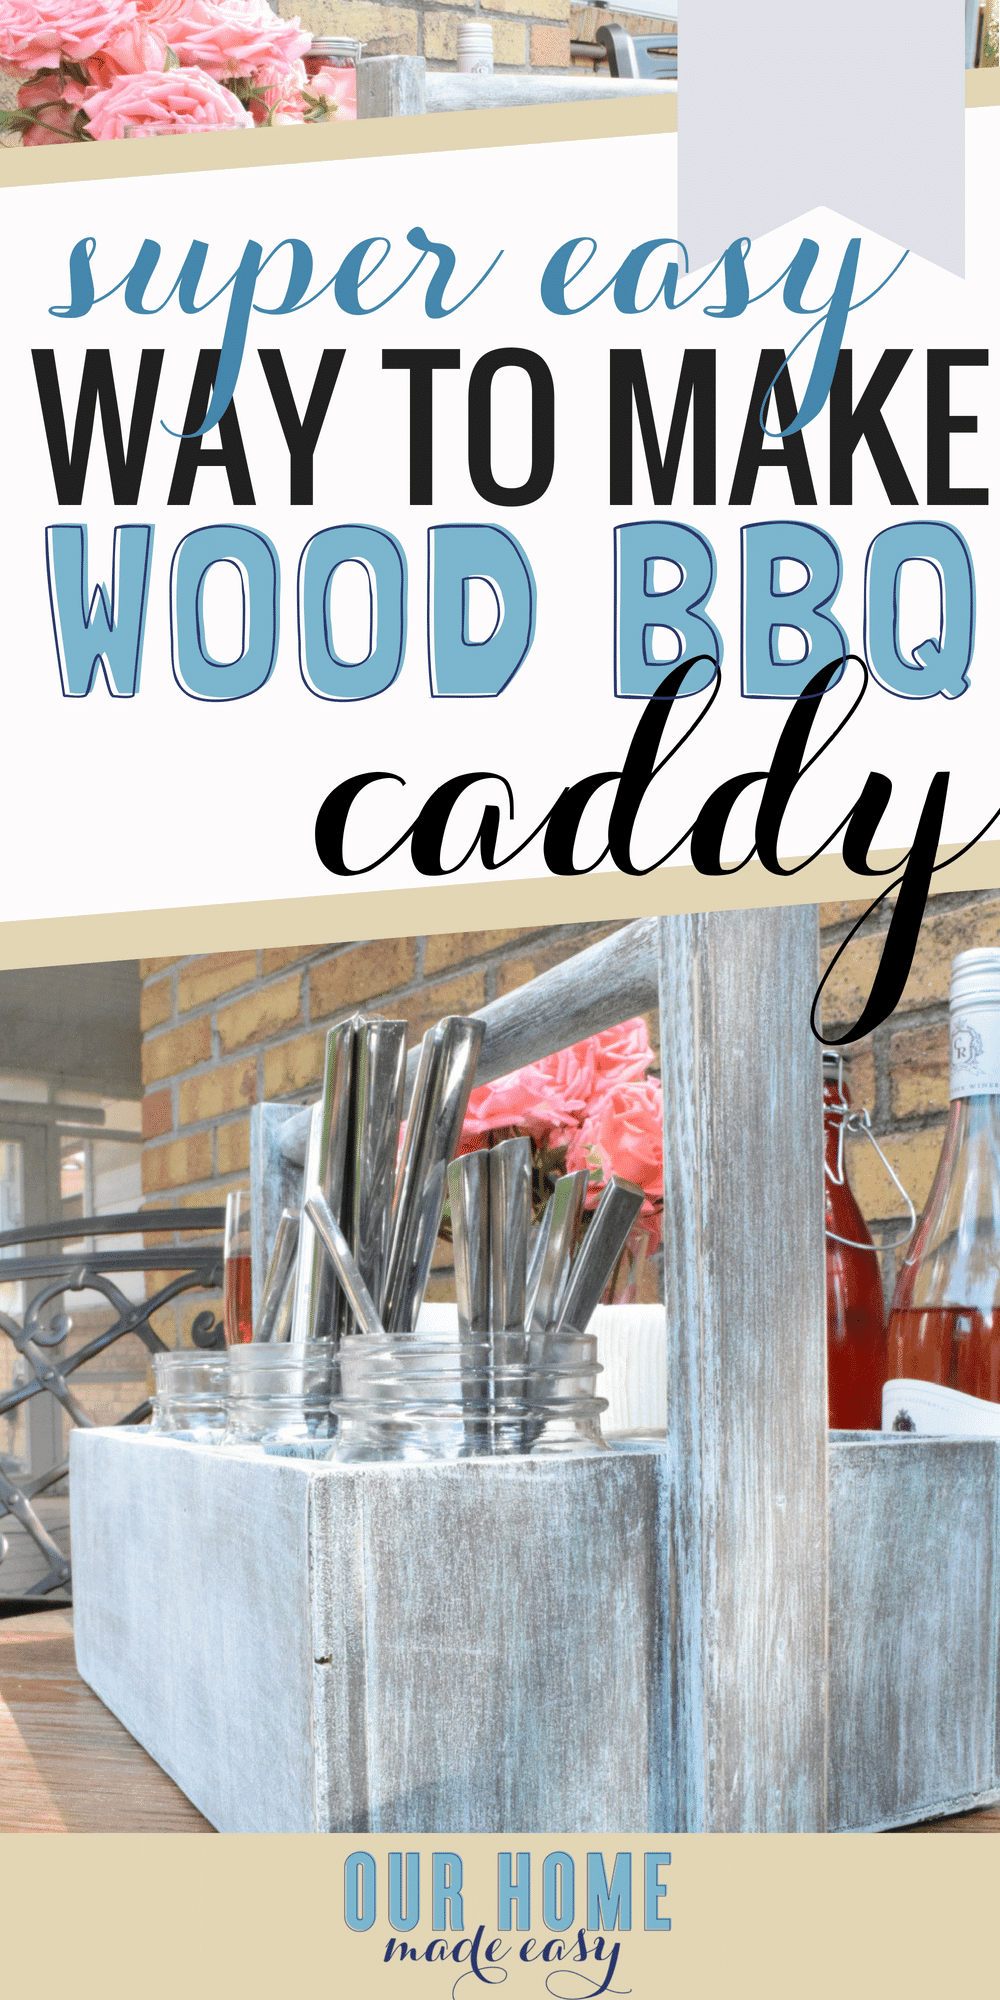 Make this DIY patio caddy for your just in time for your next BBQ or tailgate! It's perfect for combining function & style! Get all the steps here!